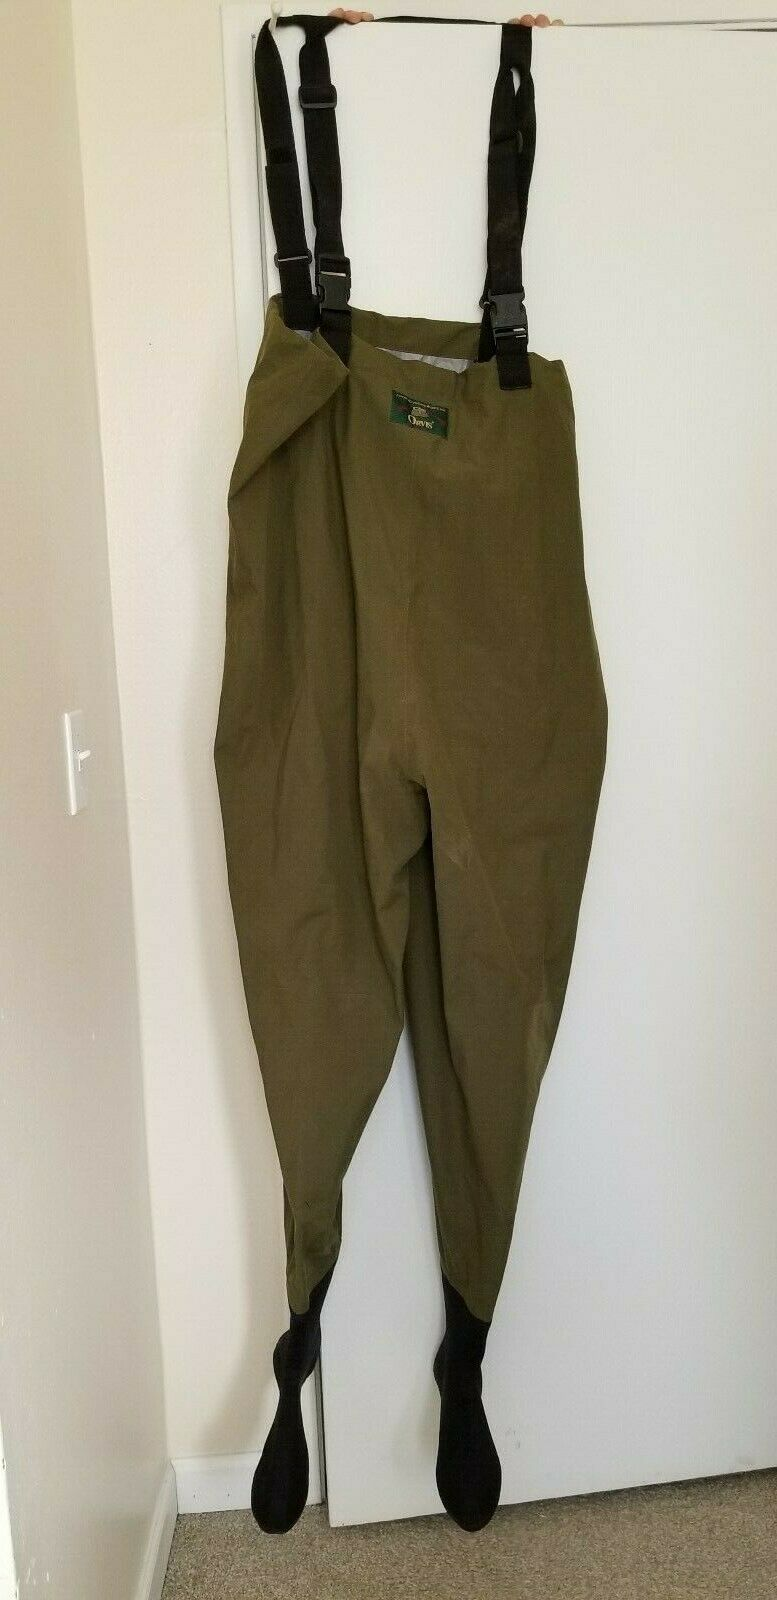 MENS ORVIS BREATHABLE SEAM  SEALED FISHING CHEST WADERS SIZE LARGE  online retailers